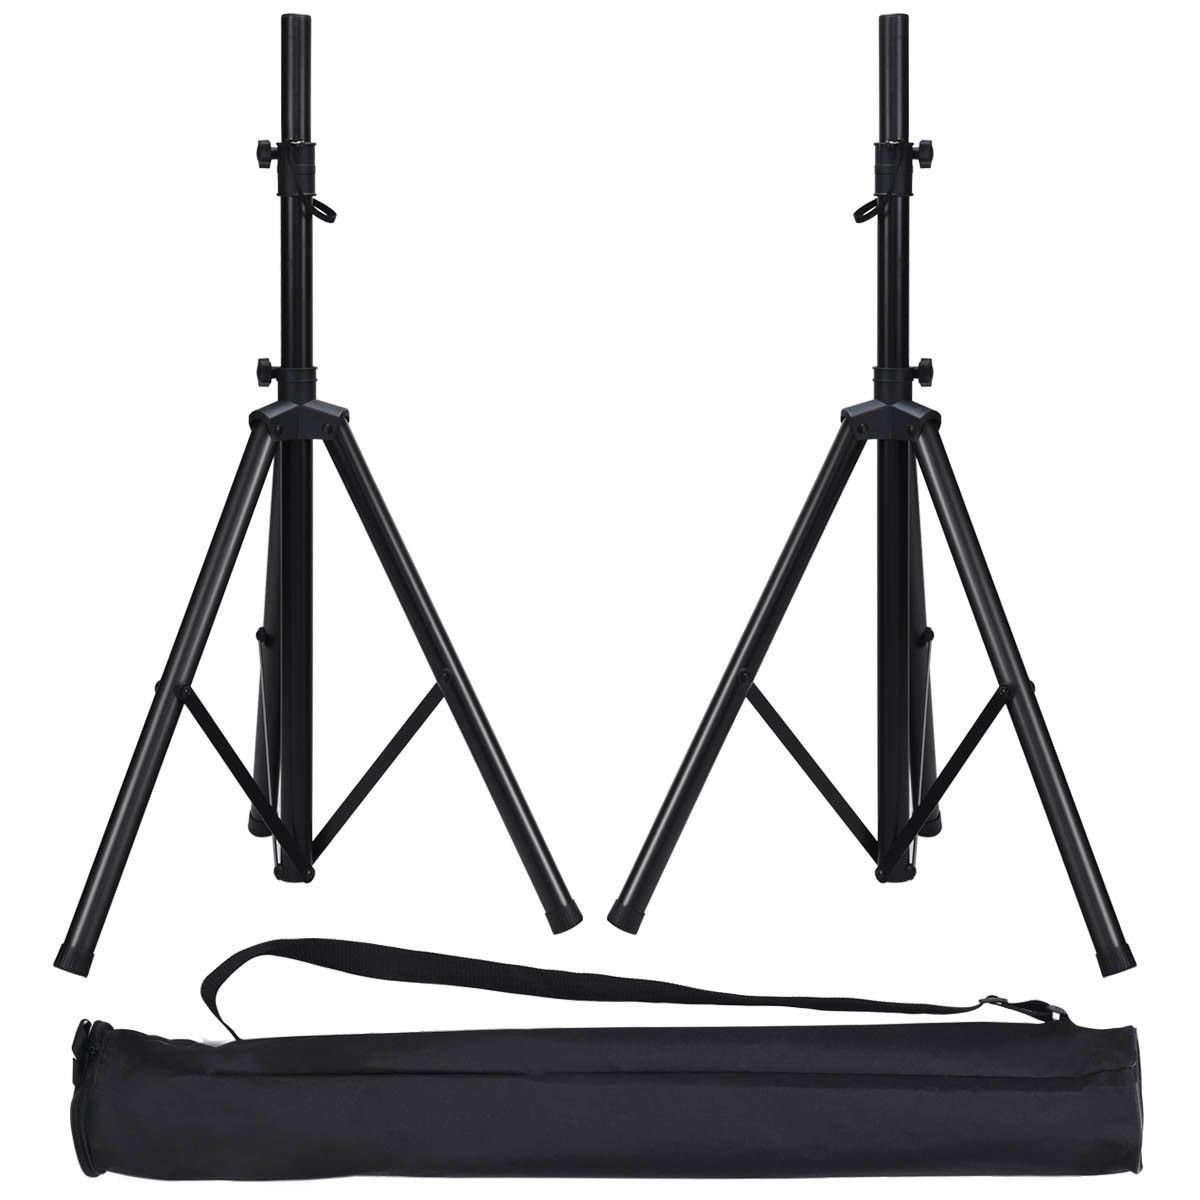 Costzon Speaker Stands, Heavy Duty Pair of Tripod DJ PA Stand, Adjustable Height From 38''to 74'', Easy Mobility Safety PIN and Knob Tension Locking Equipment Holder w/Carry Bag